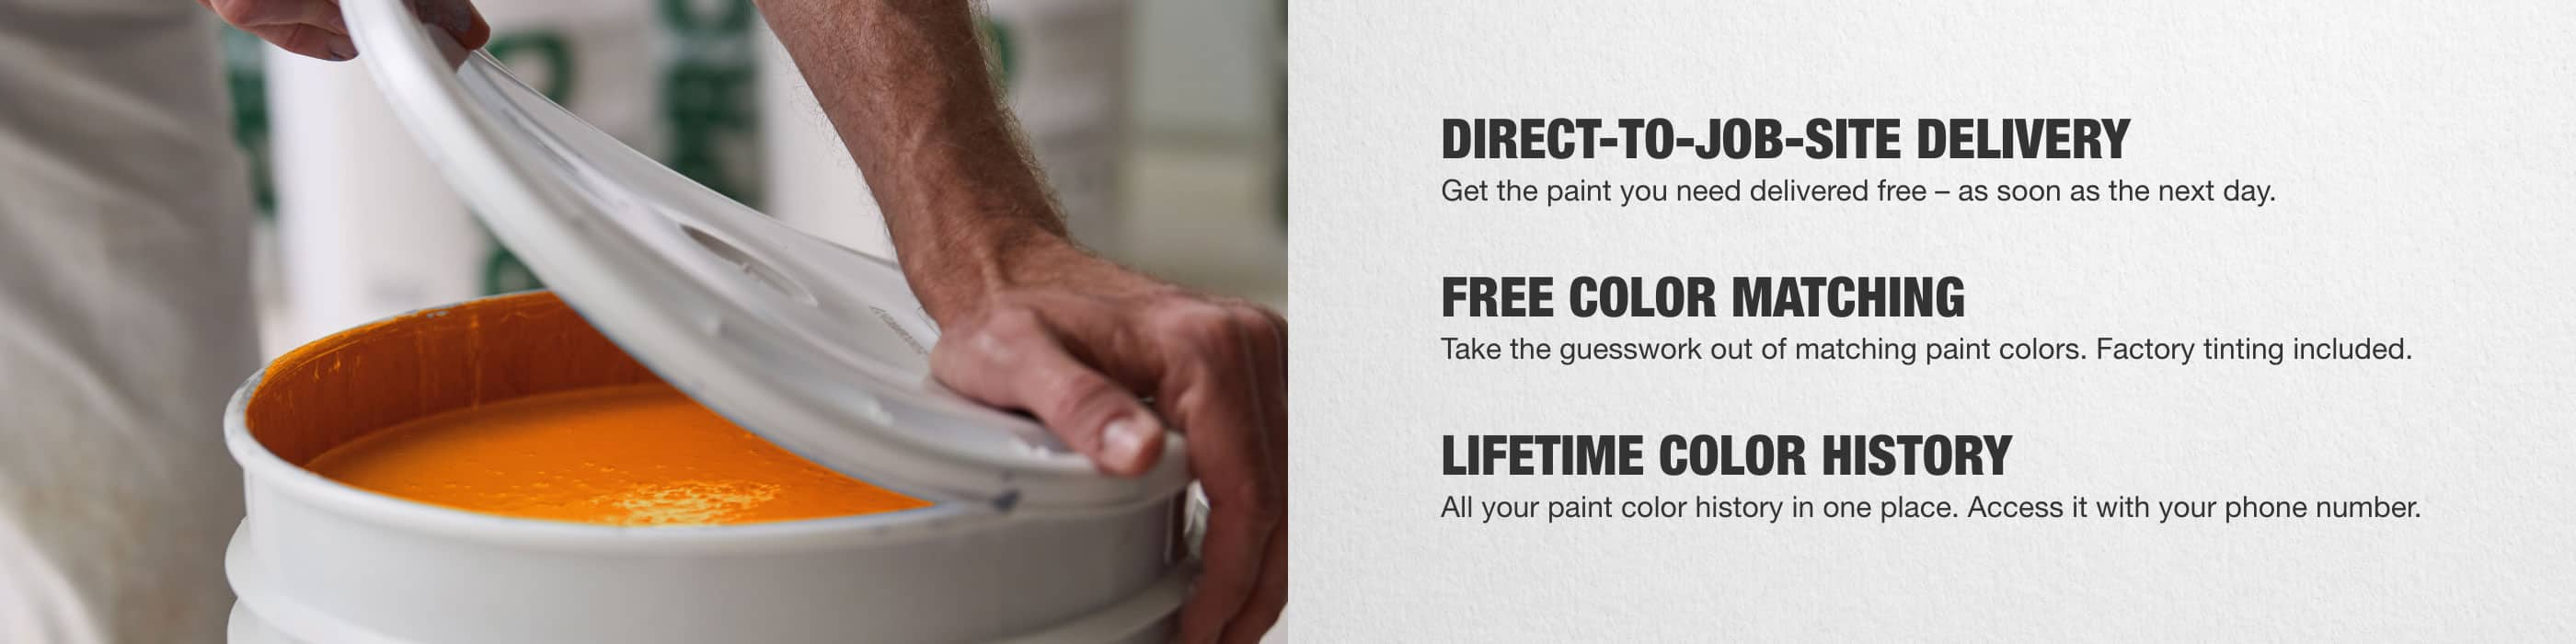 close-up of painter's hands lifting lid of a bucket of orange paint